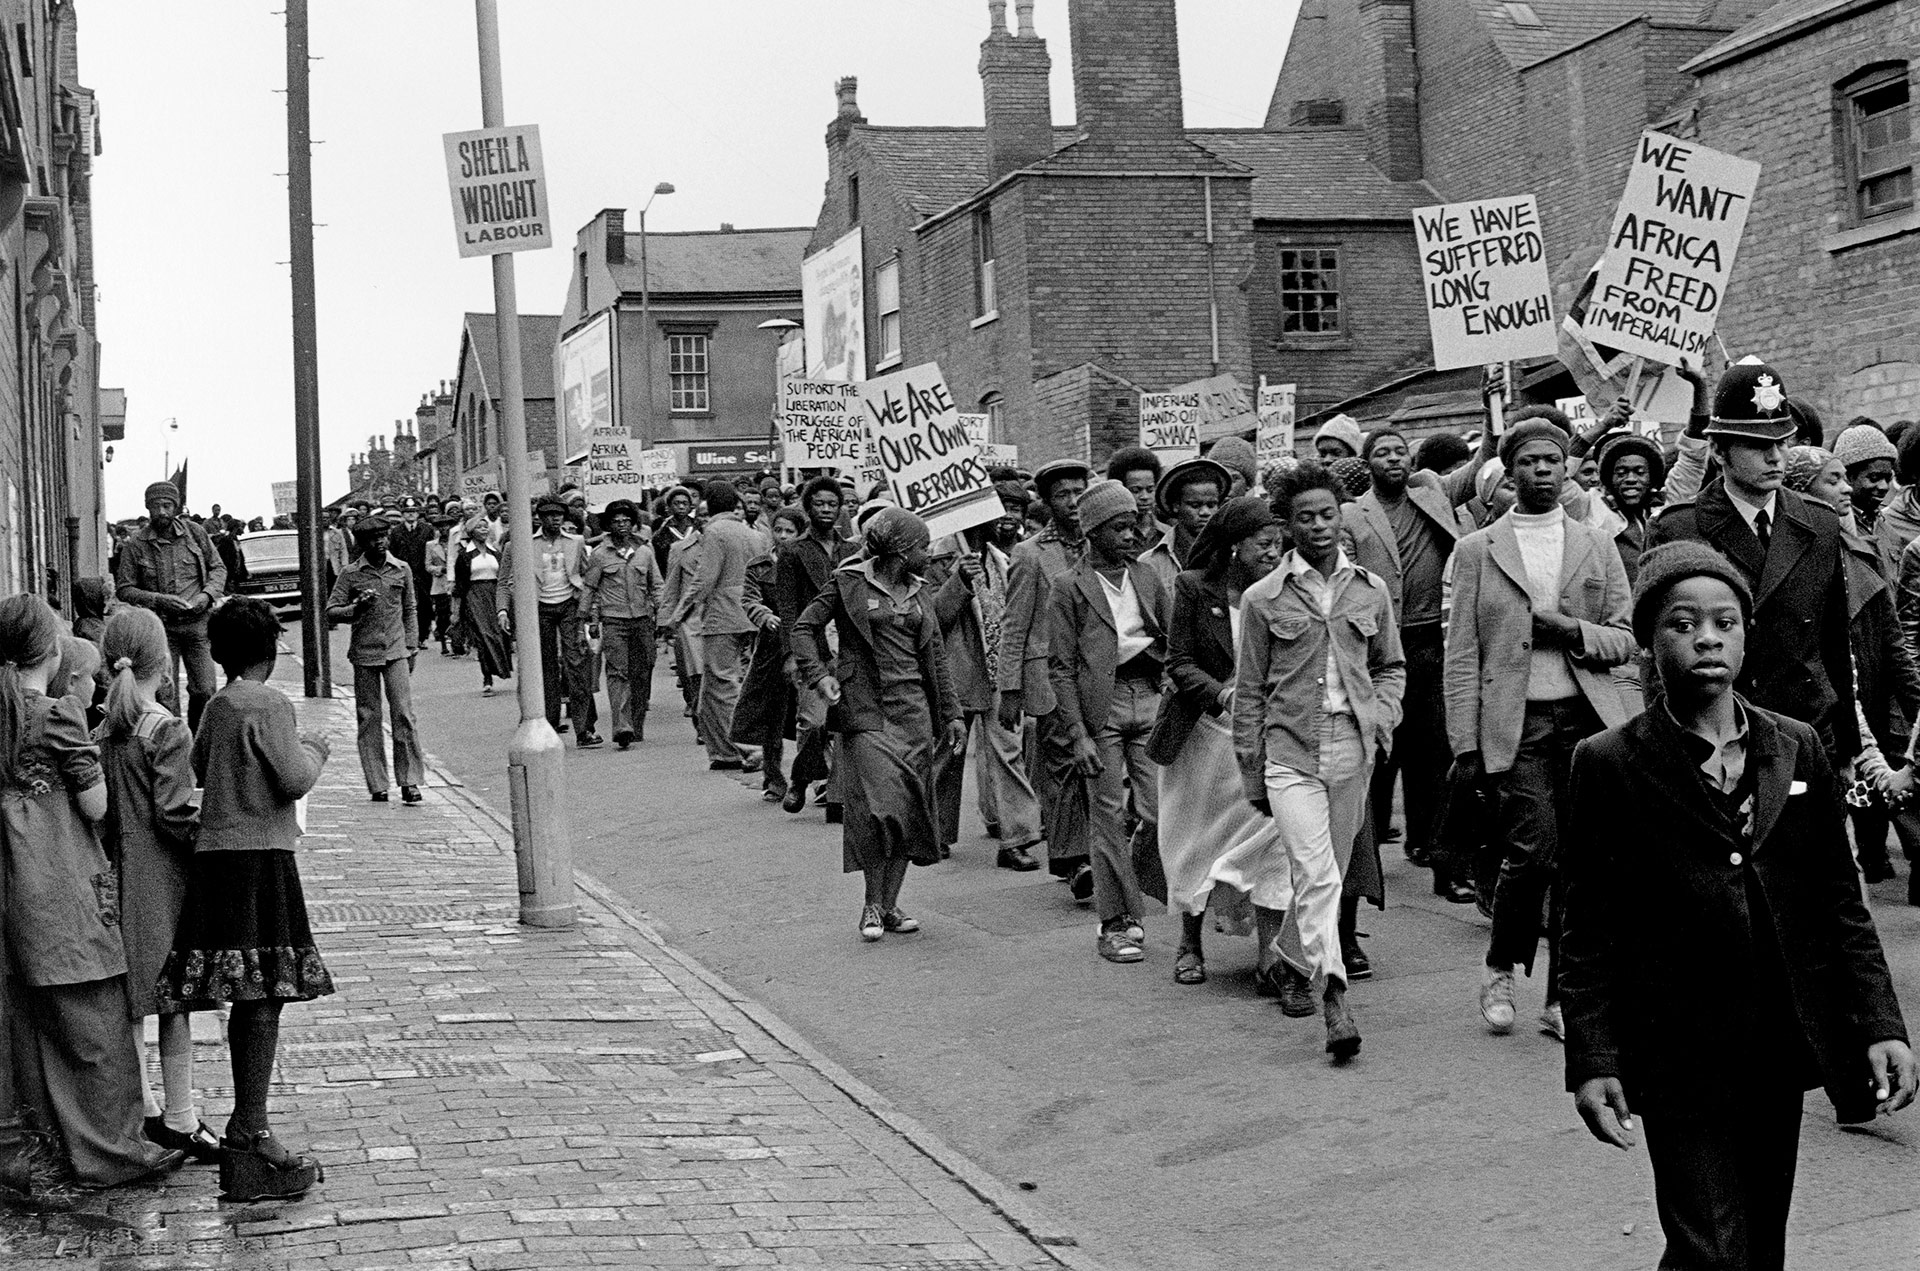 African Liberation Day, 1977